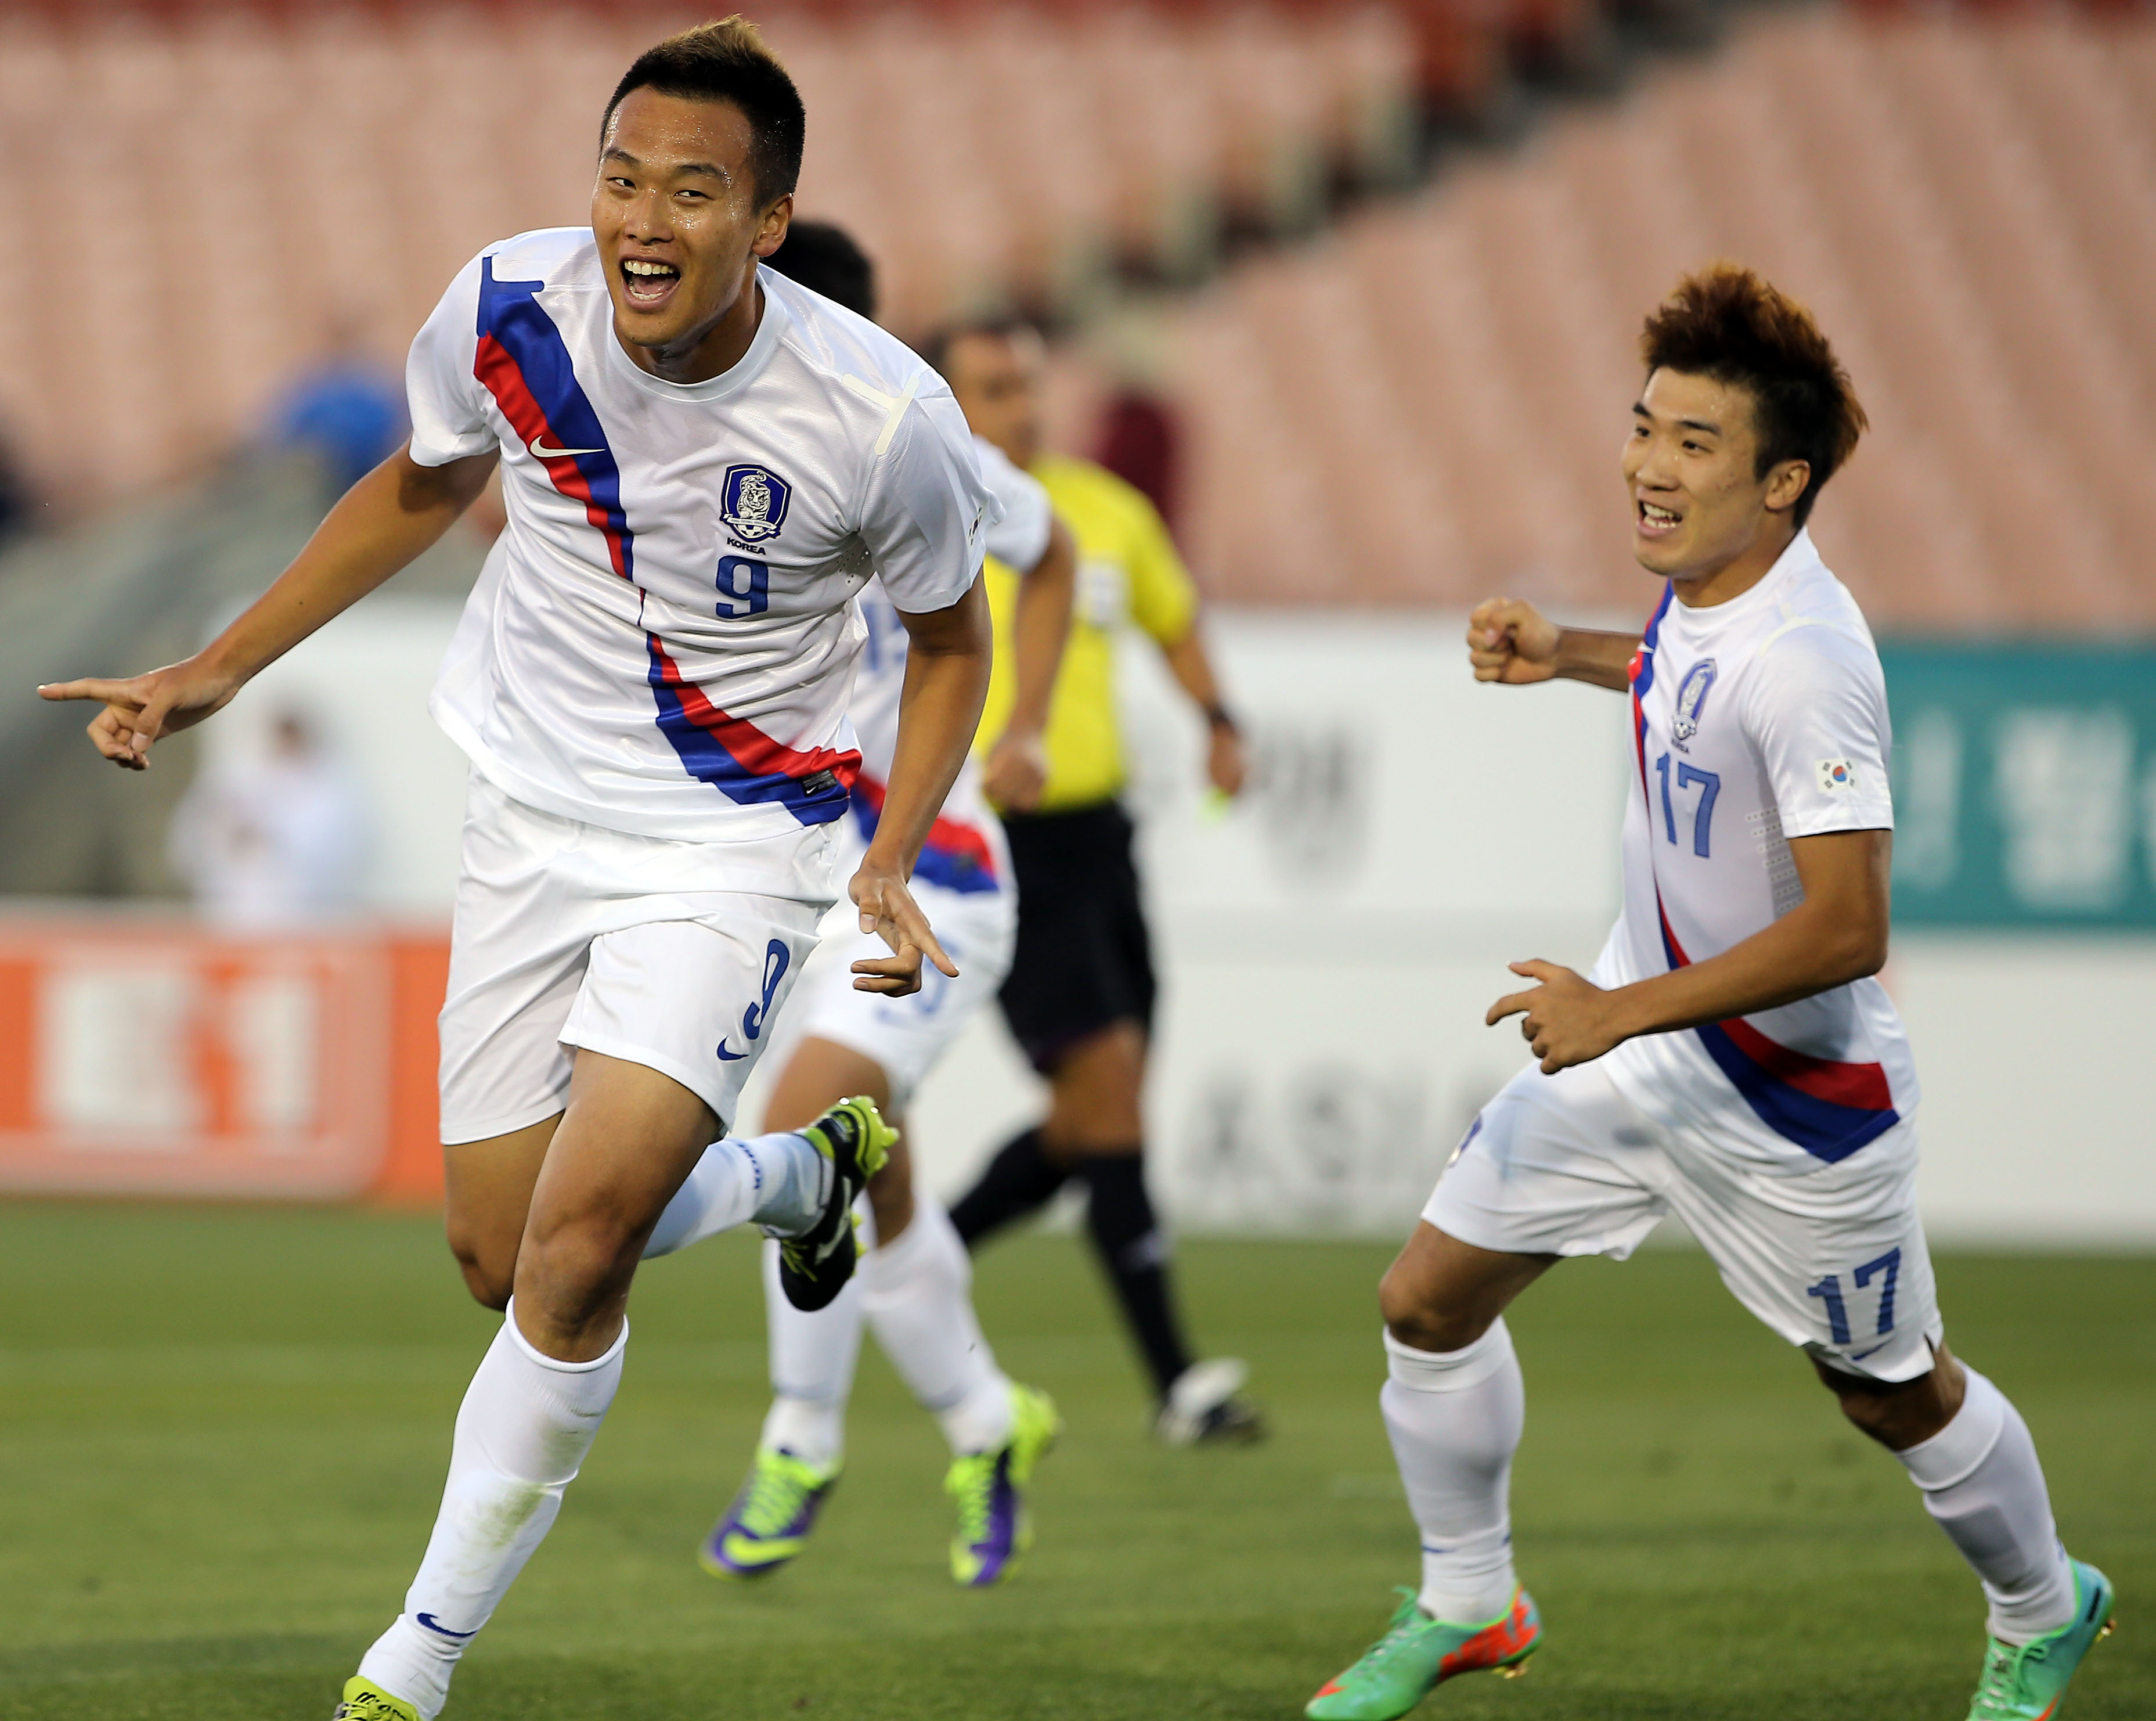 Kim Shin-wook, left, will look to score against Mexico next. (Yonhap)